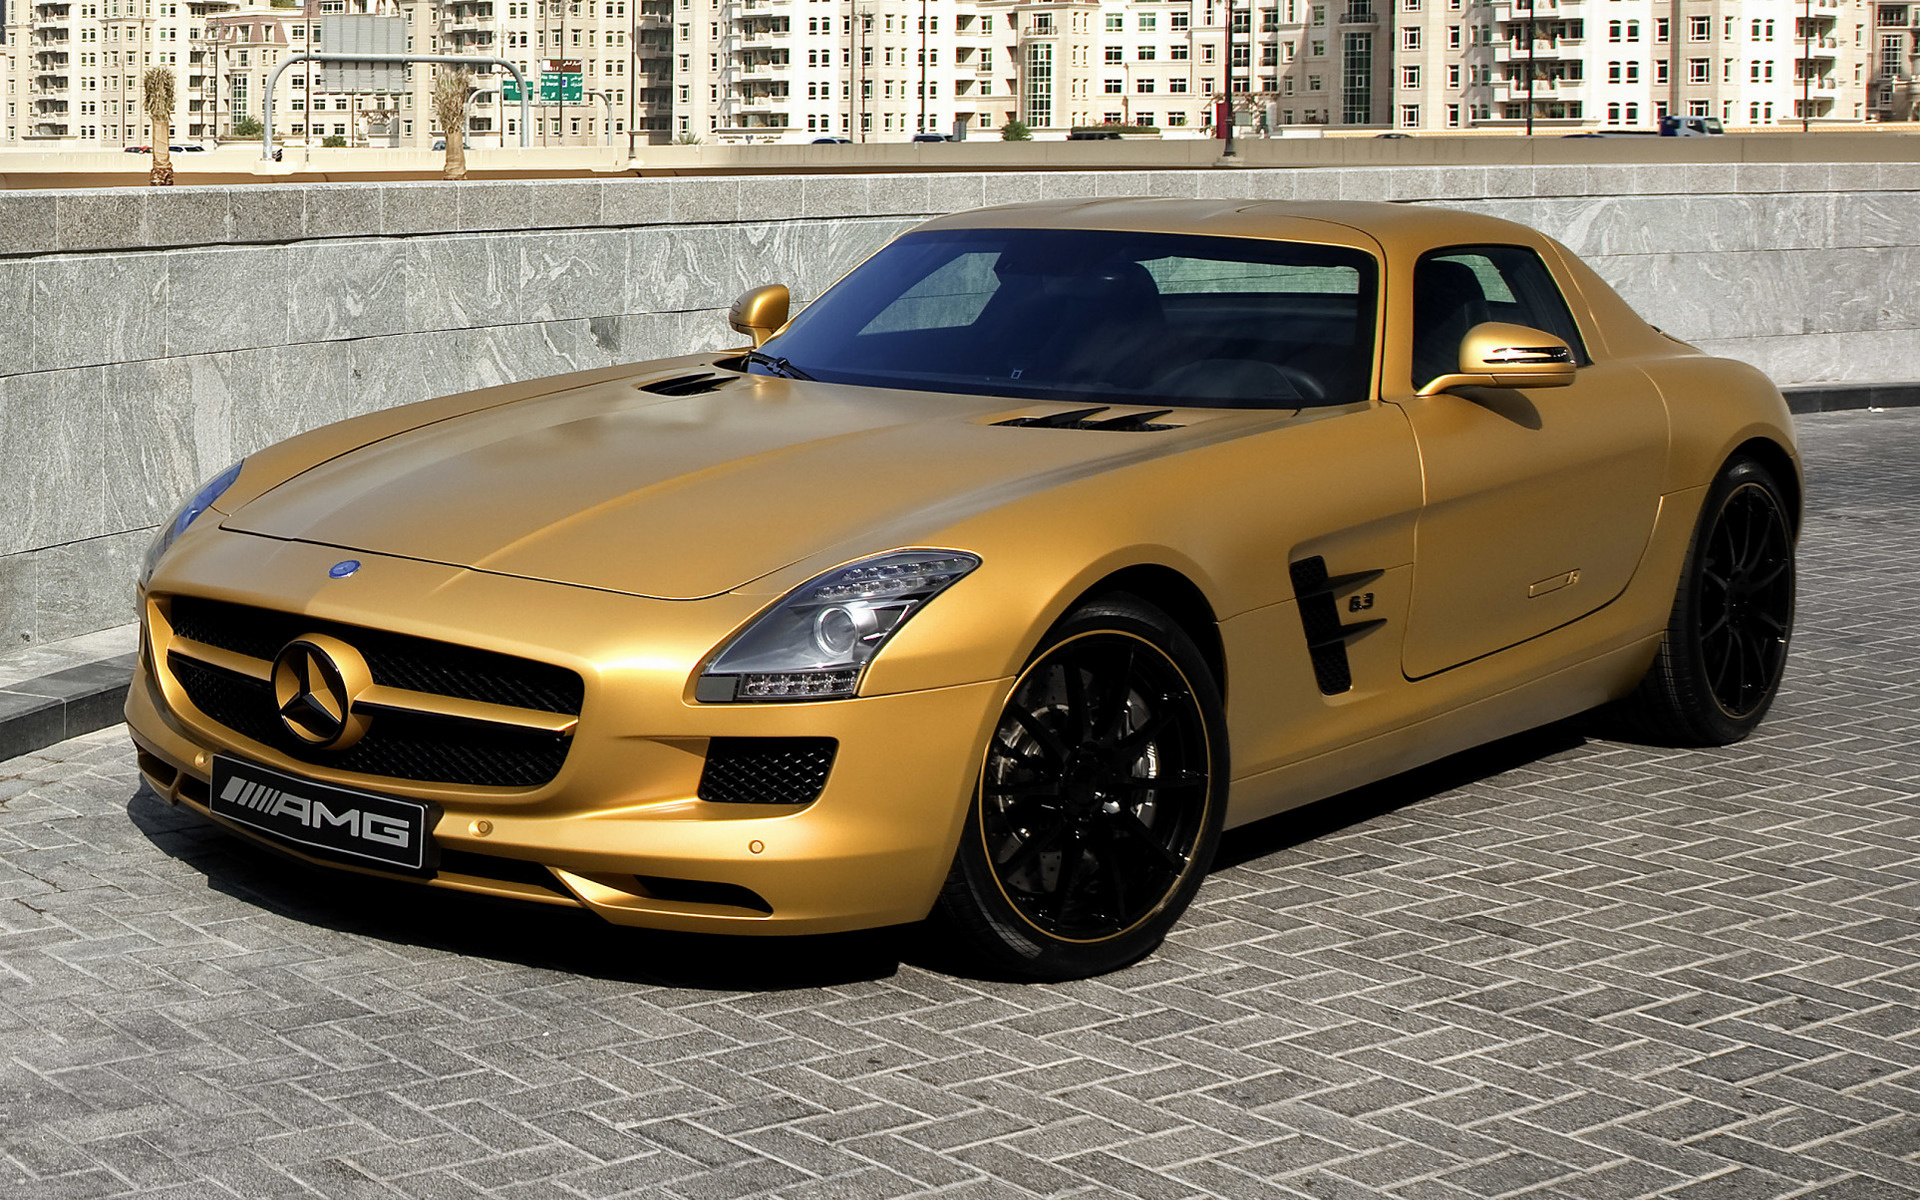 2010 mercedes benz sls amg desert gold wallpapers and hd. Black Bedroom Furniture Sets. Home Design Ideas